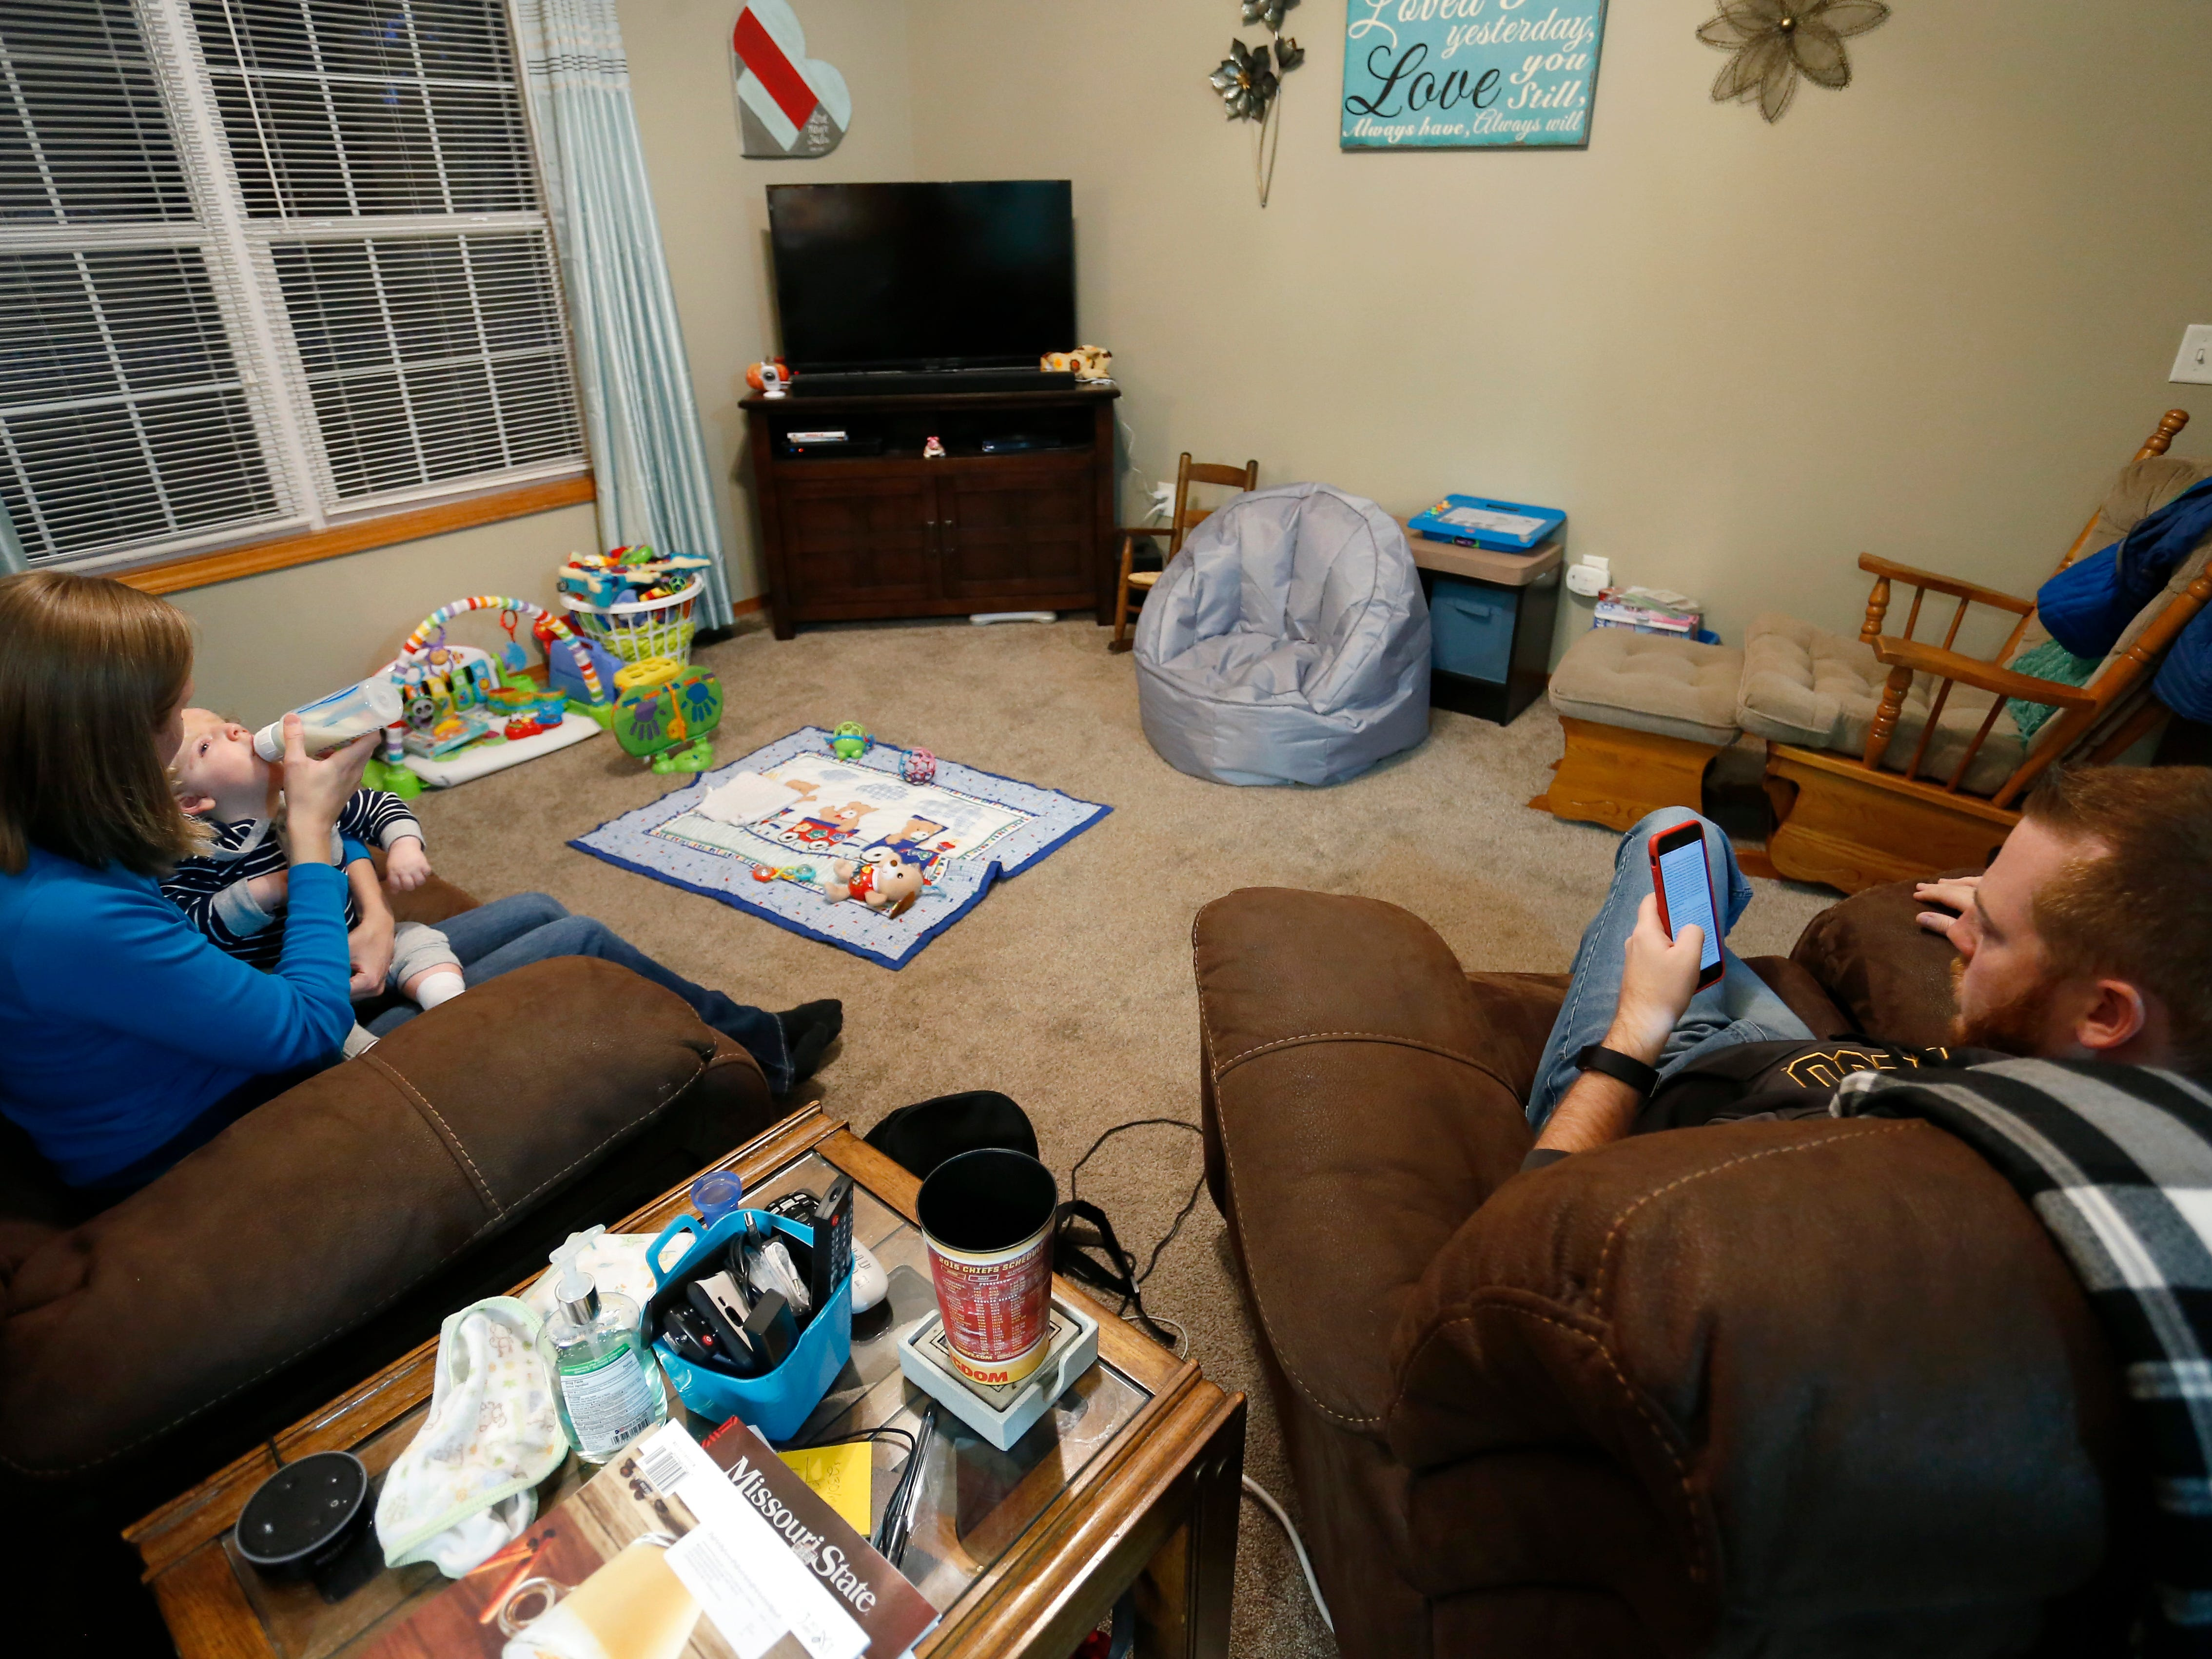 Jessica Masterson feeds her one-year-old son Owen at their home on Thursday, October 11, 2018. Owen was born missing the top part of his skull and was not expected to survive childbirth.